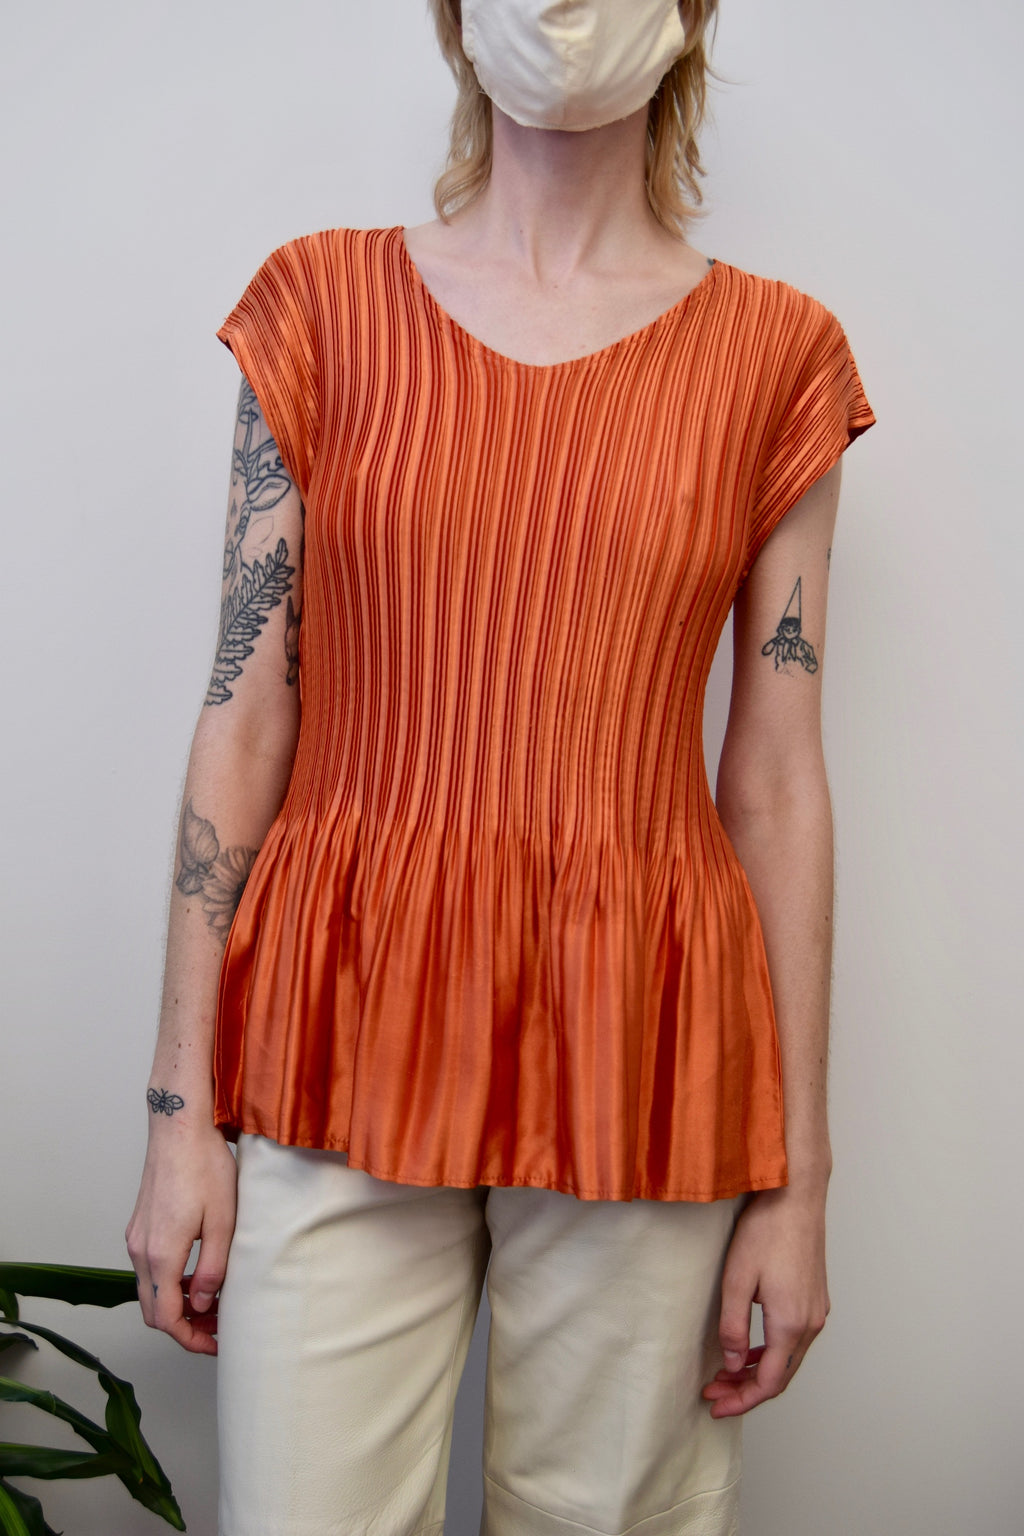 Pleated Orange Shiny Top